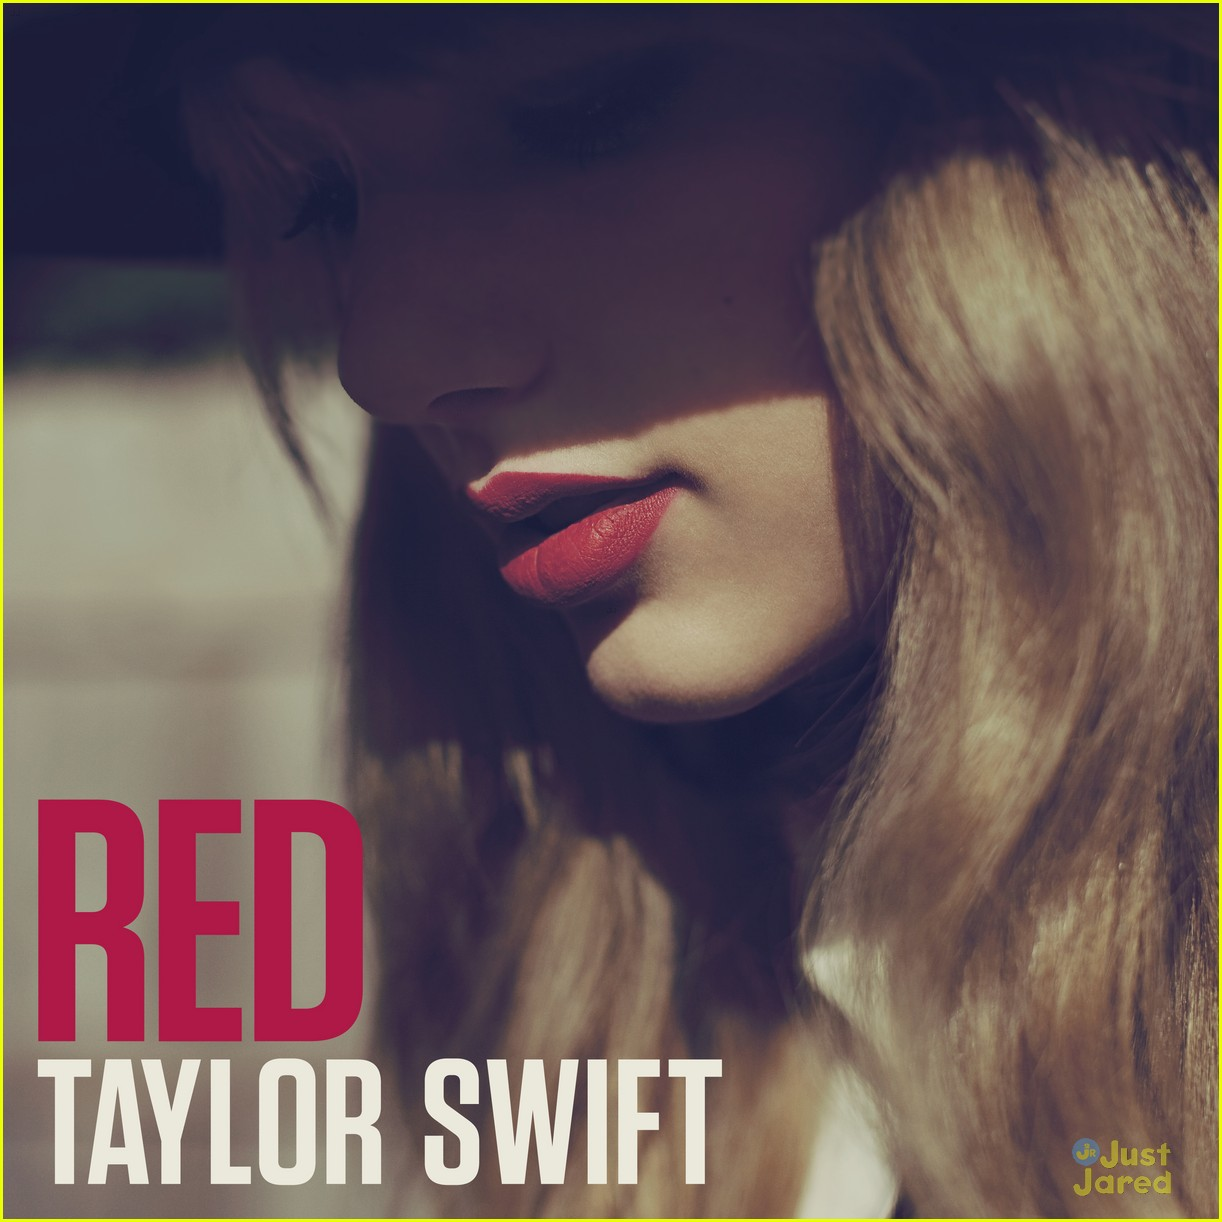 taylor swift red album 02